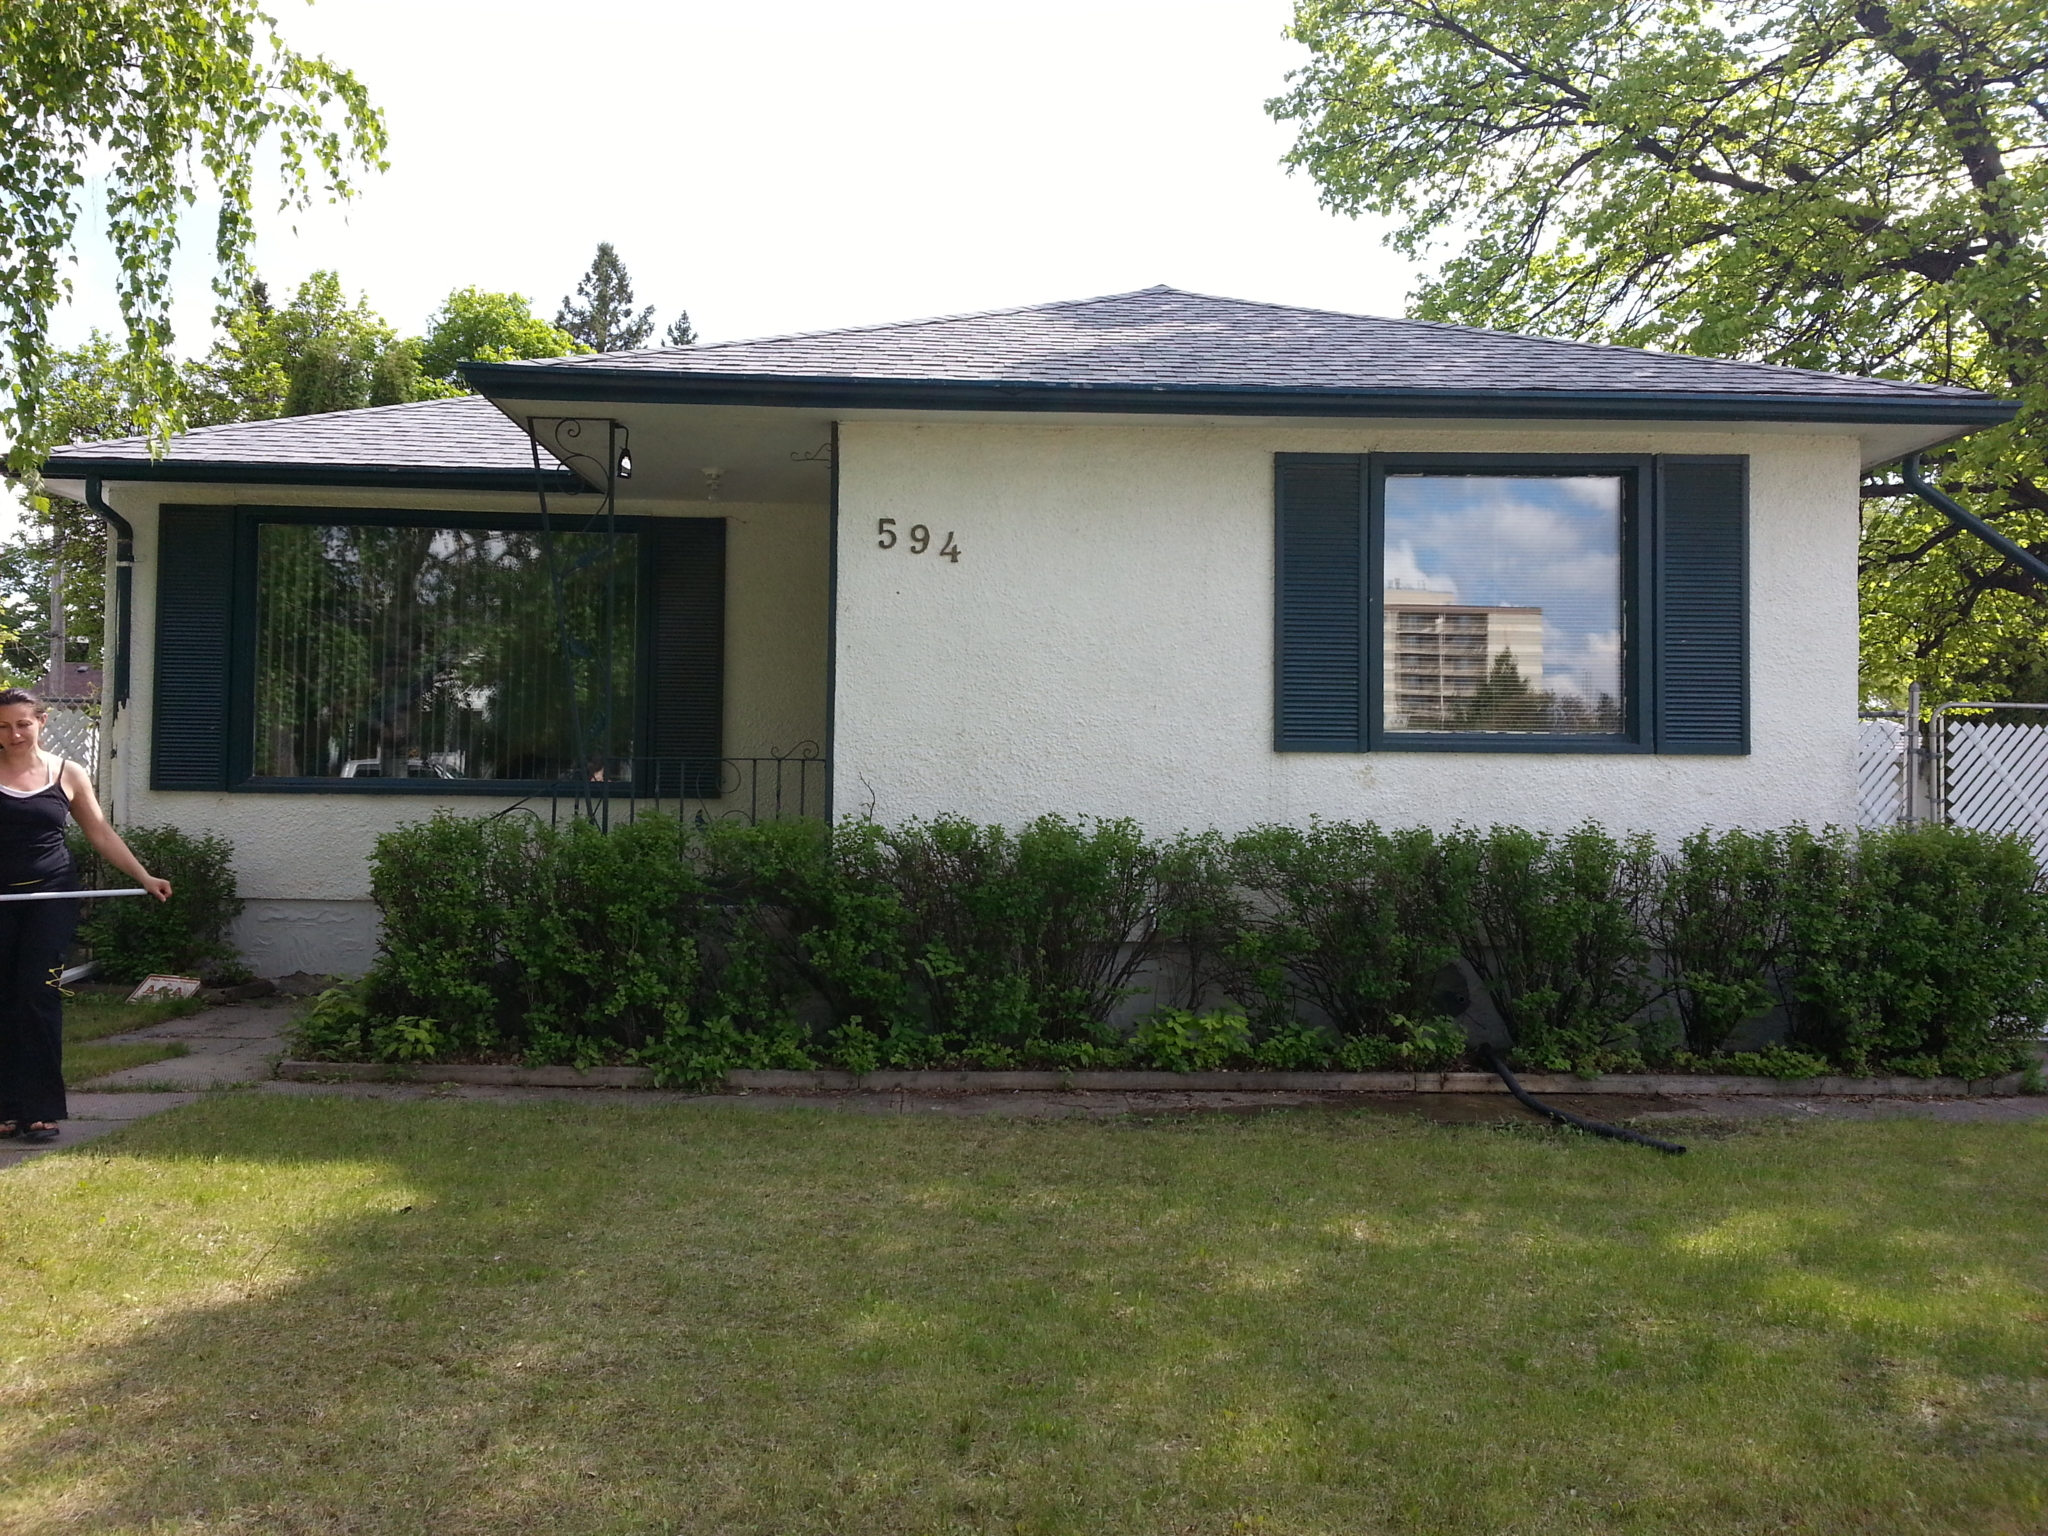 The Best Addresses For Covering Roofing In Winnipeg